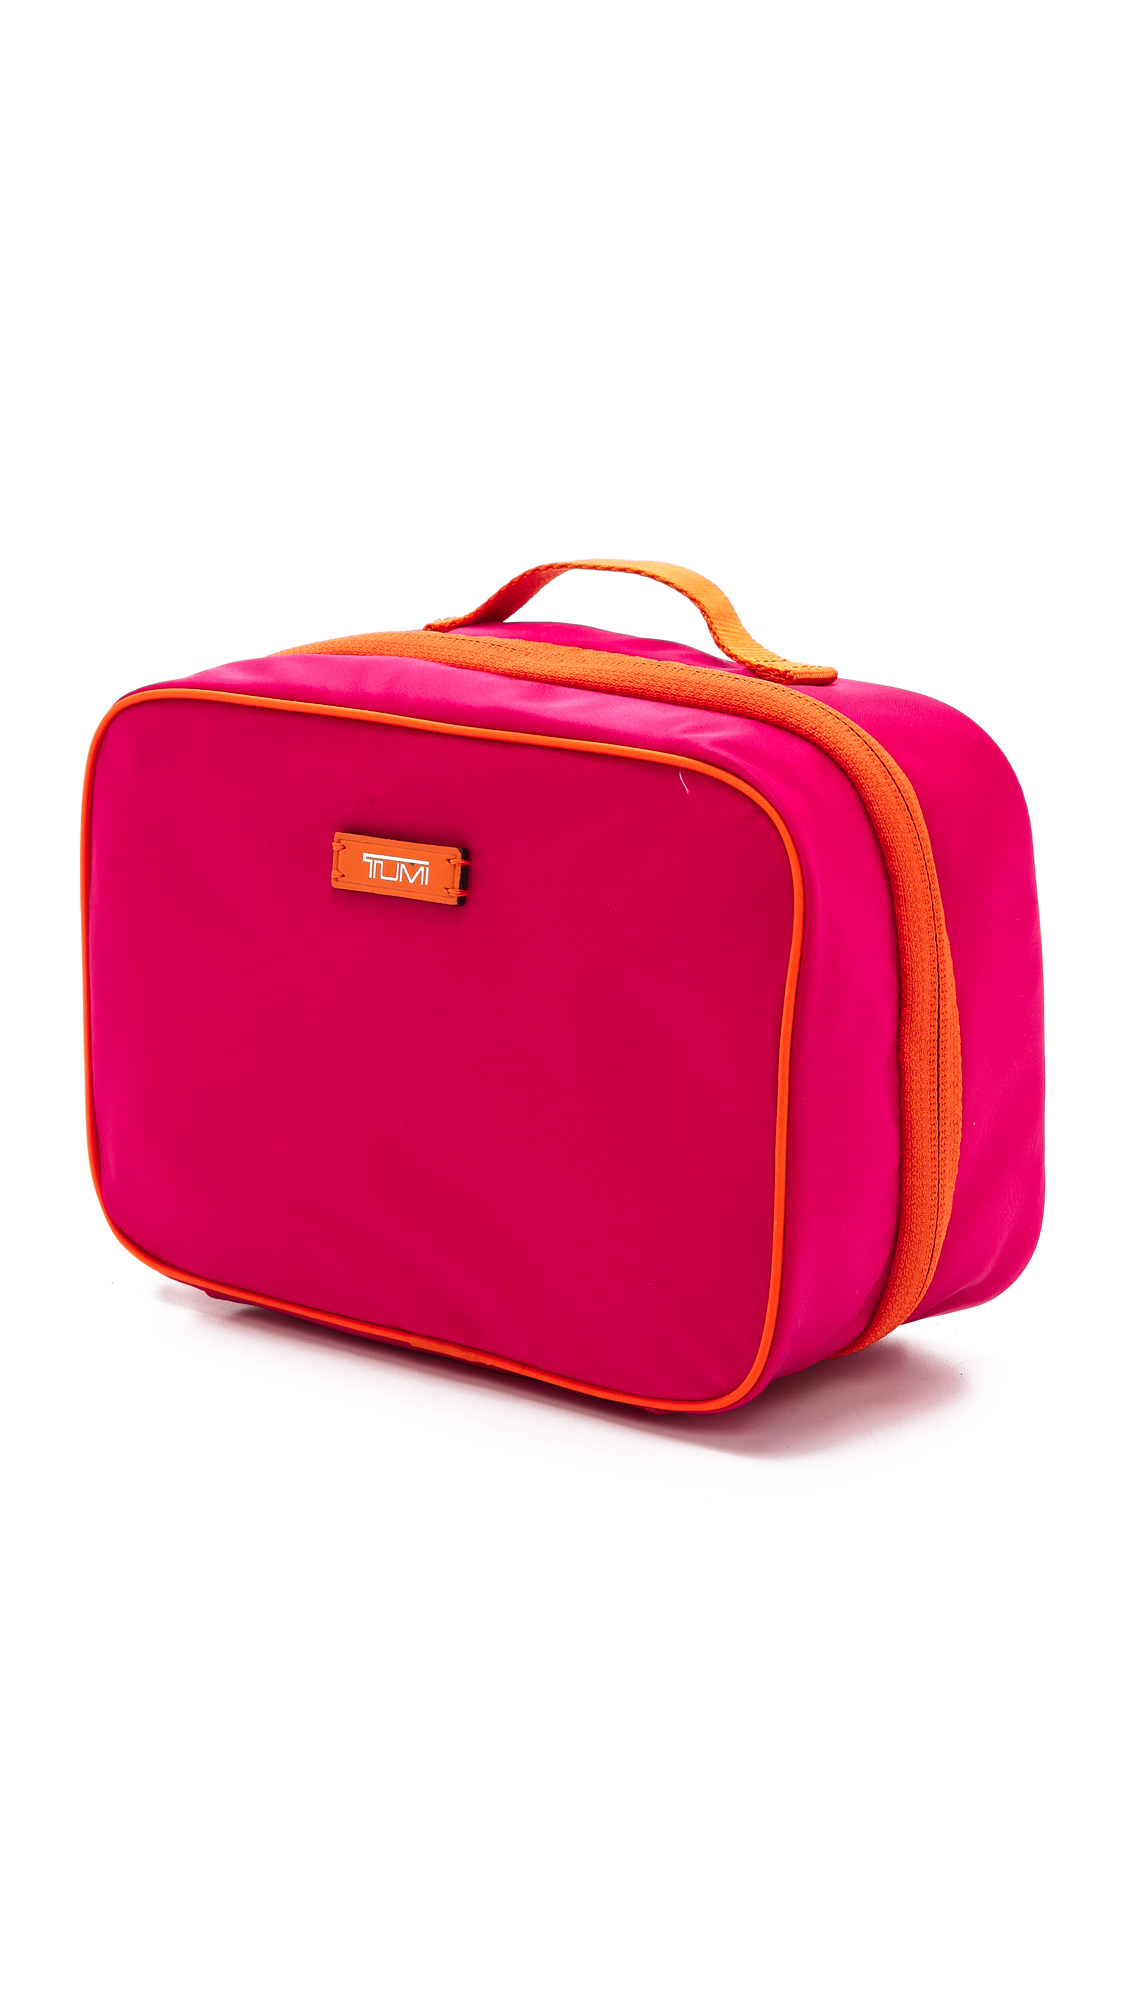 2accbbee9e Lyst - Tumi Lima Travel Toiletry Kit Lipstick in Pink